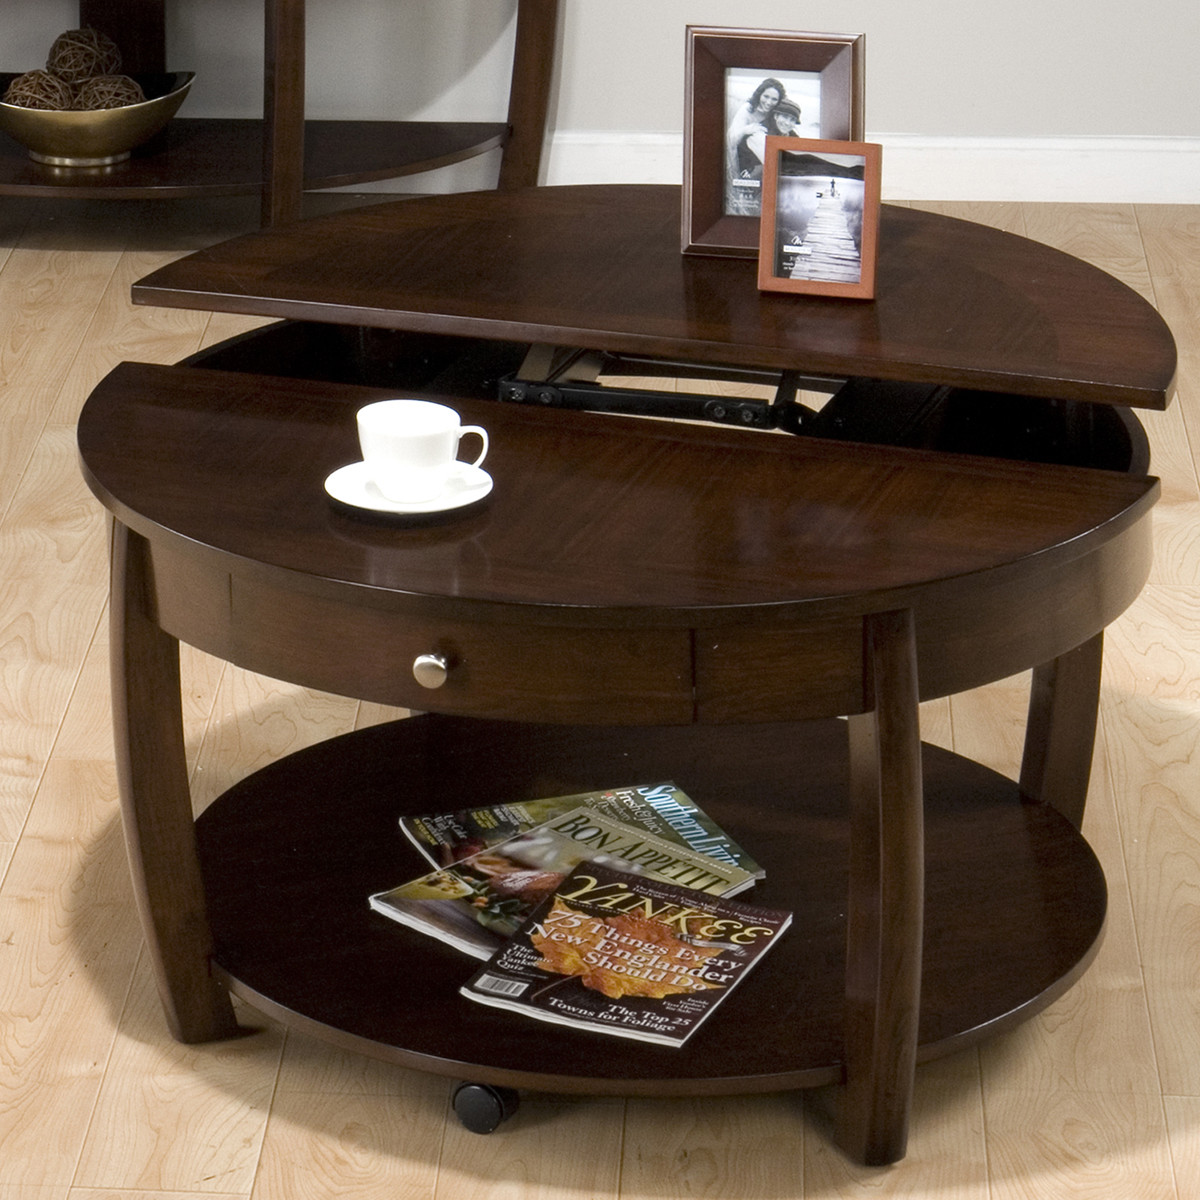 Best ideas about Round Lift Top Coffee Table . Save or Pin Round Lift Top Coffee Table Now.